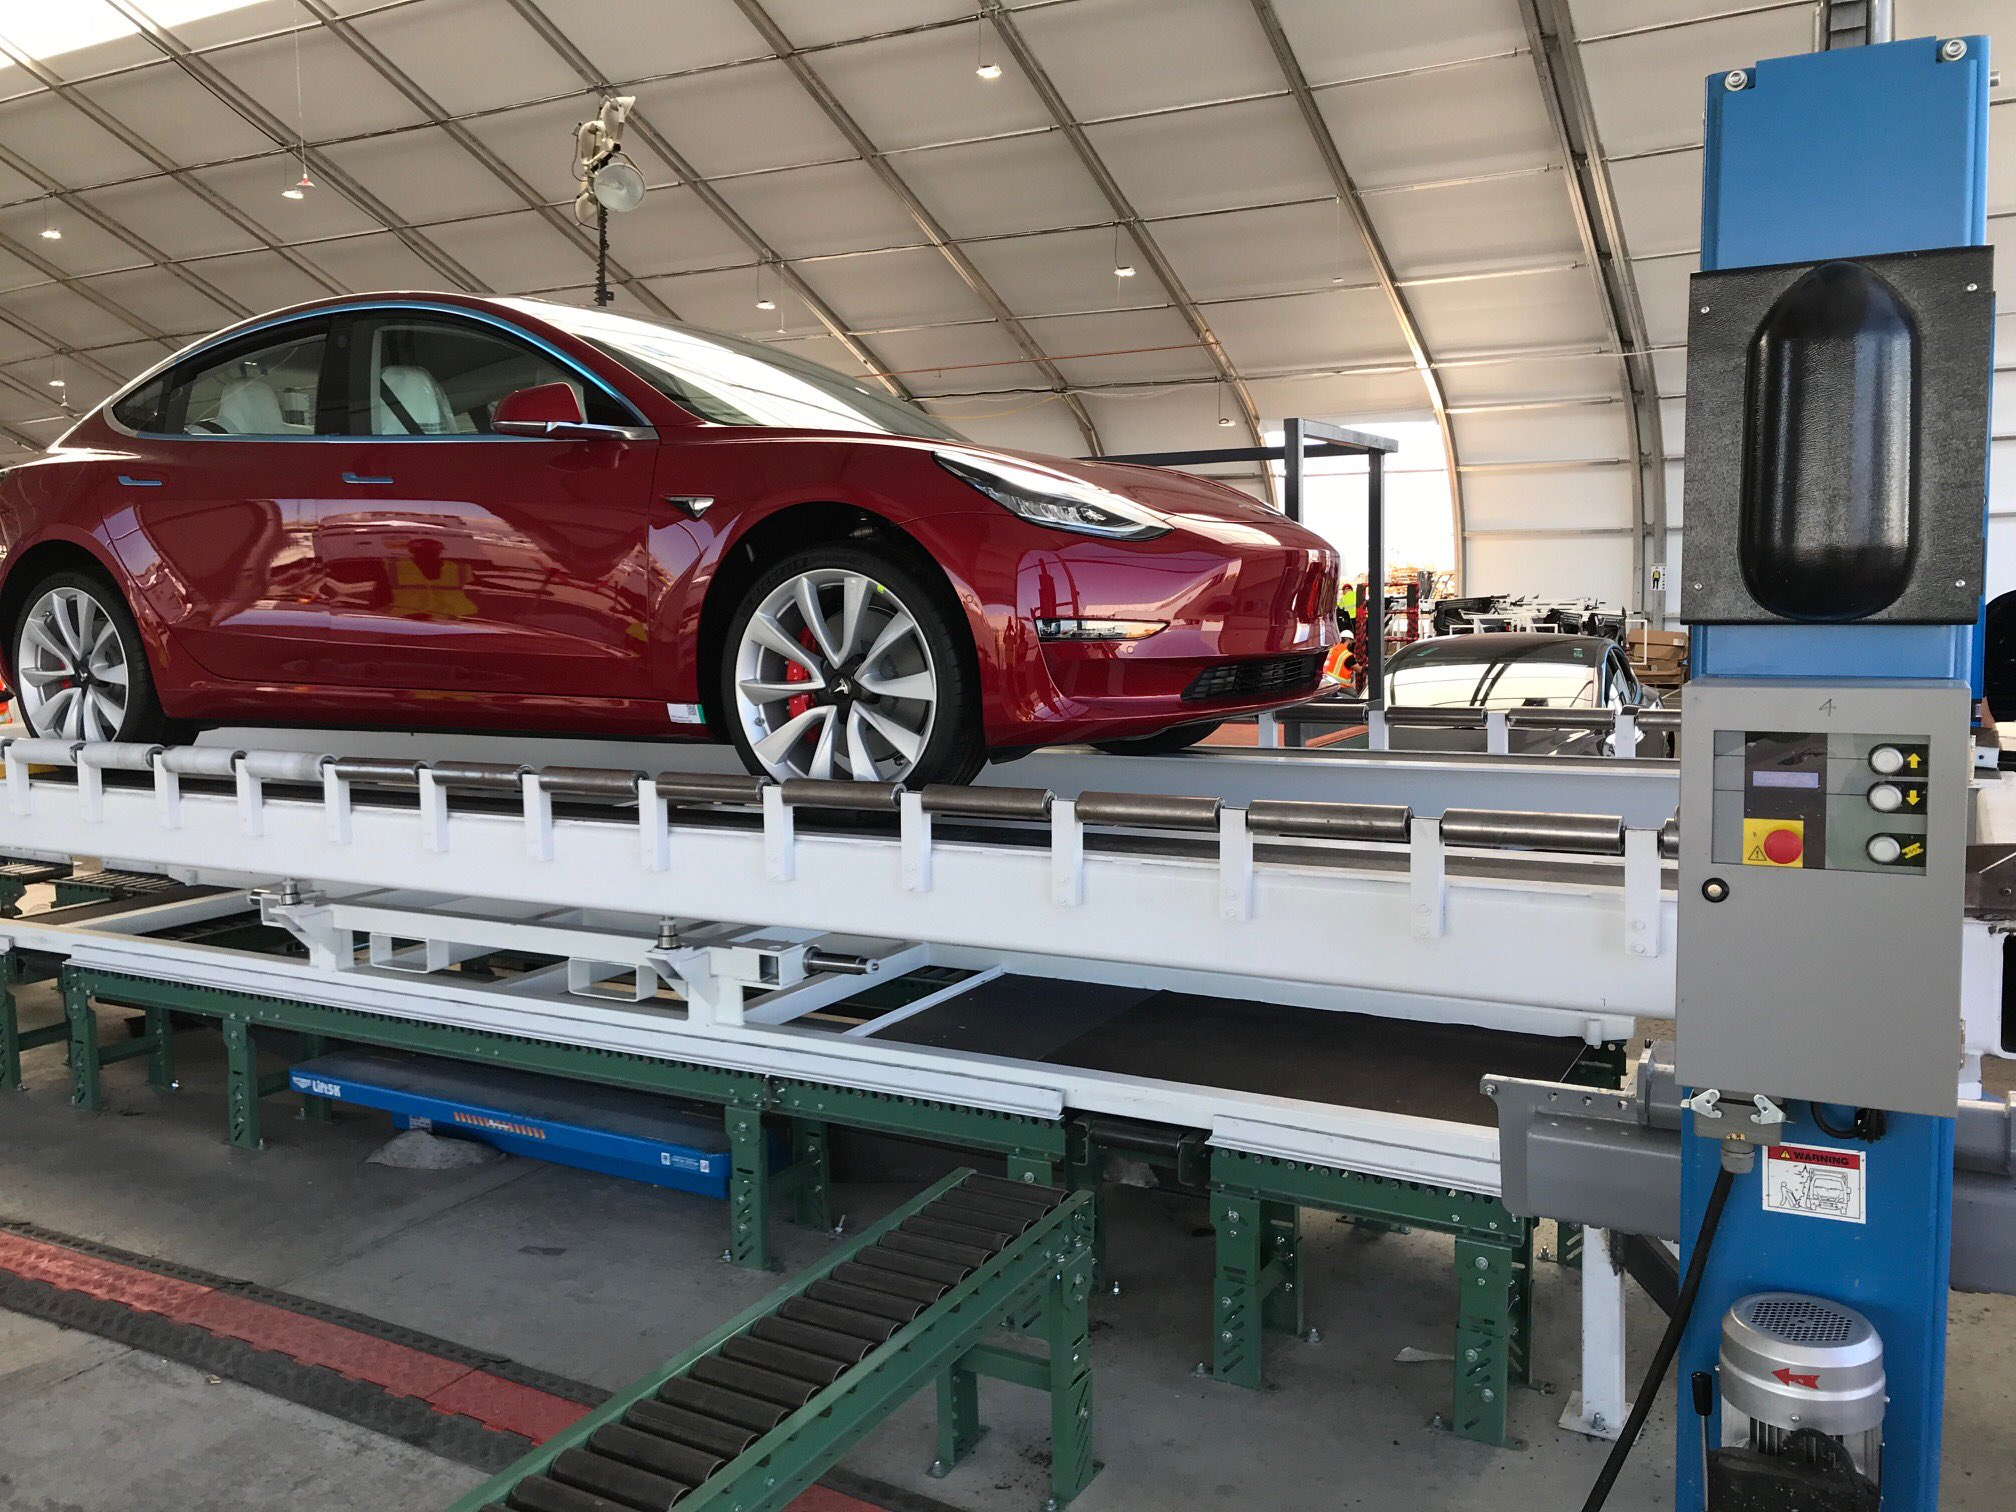 Tesla Model 3 orders open to all US, Canada buyers